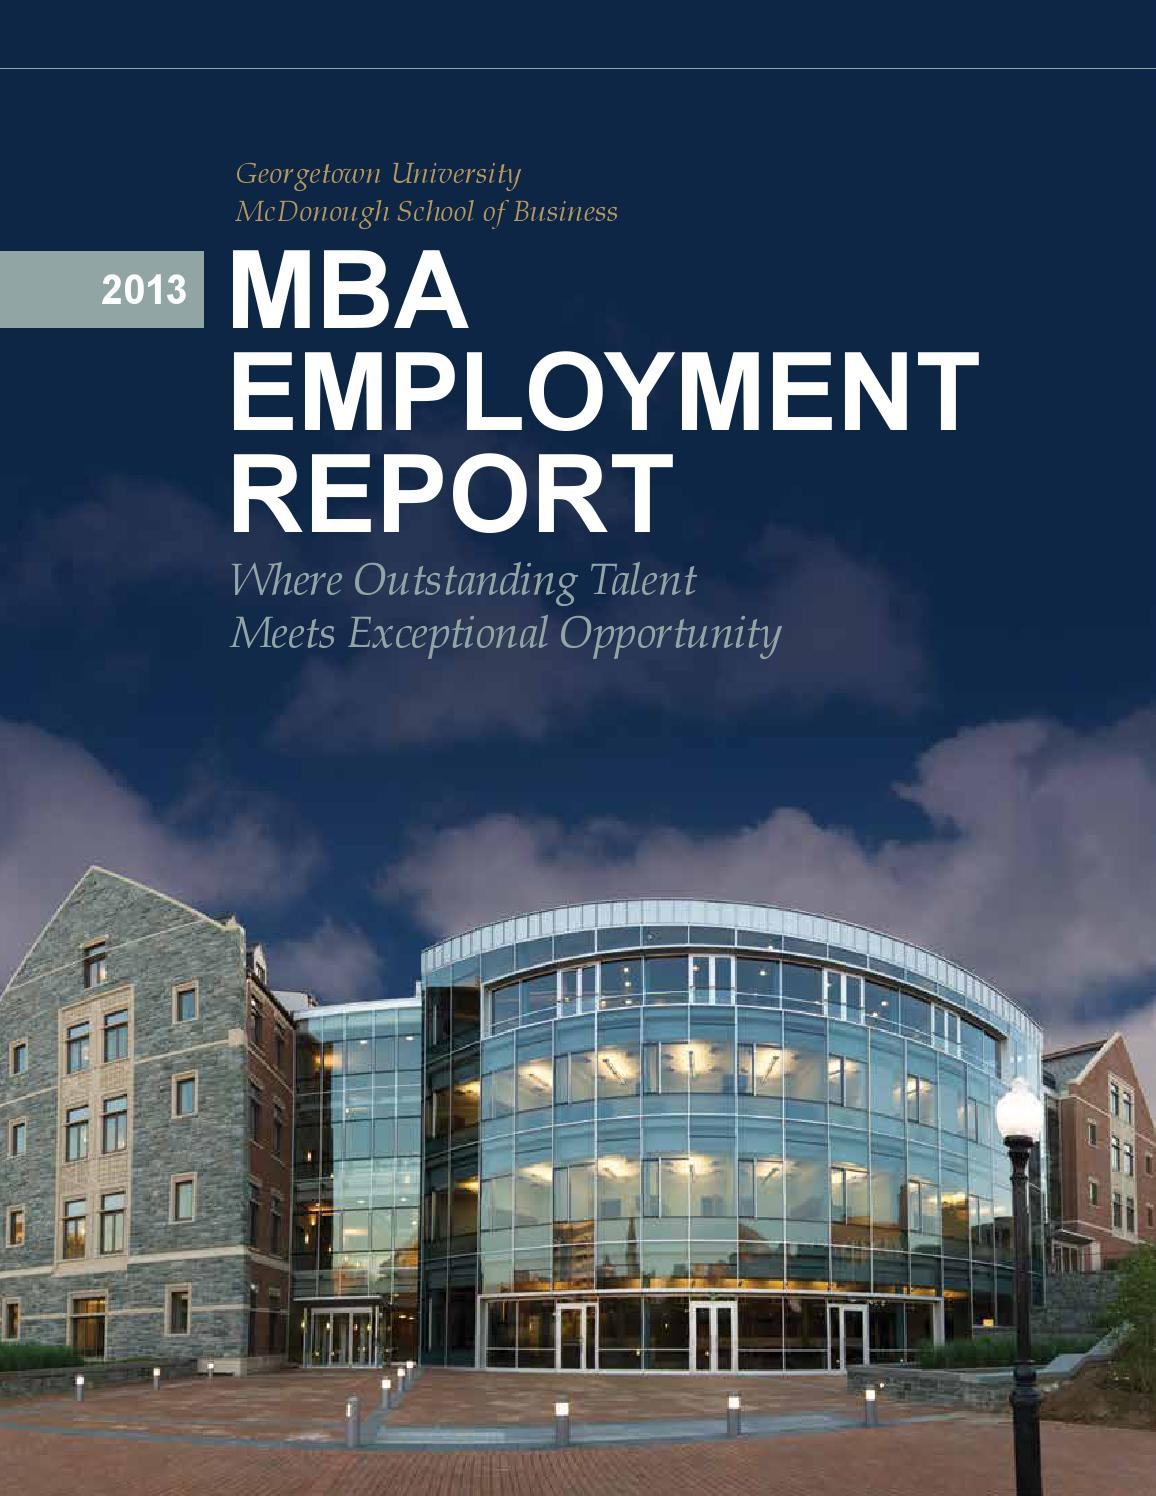 2013 MBA Employment Report by Georgetown University ...